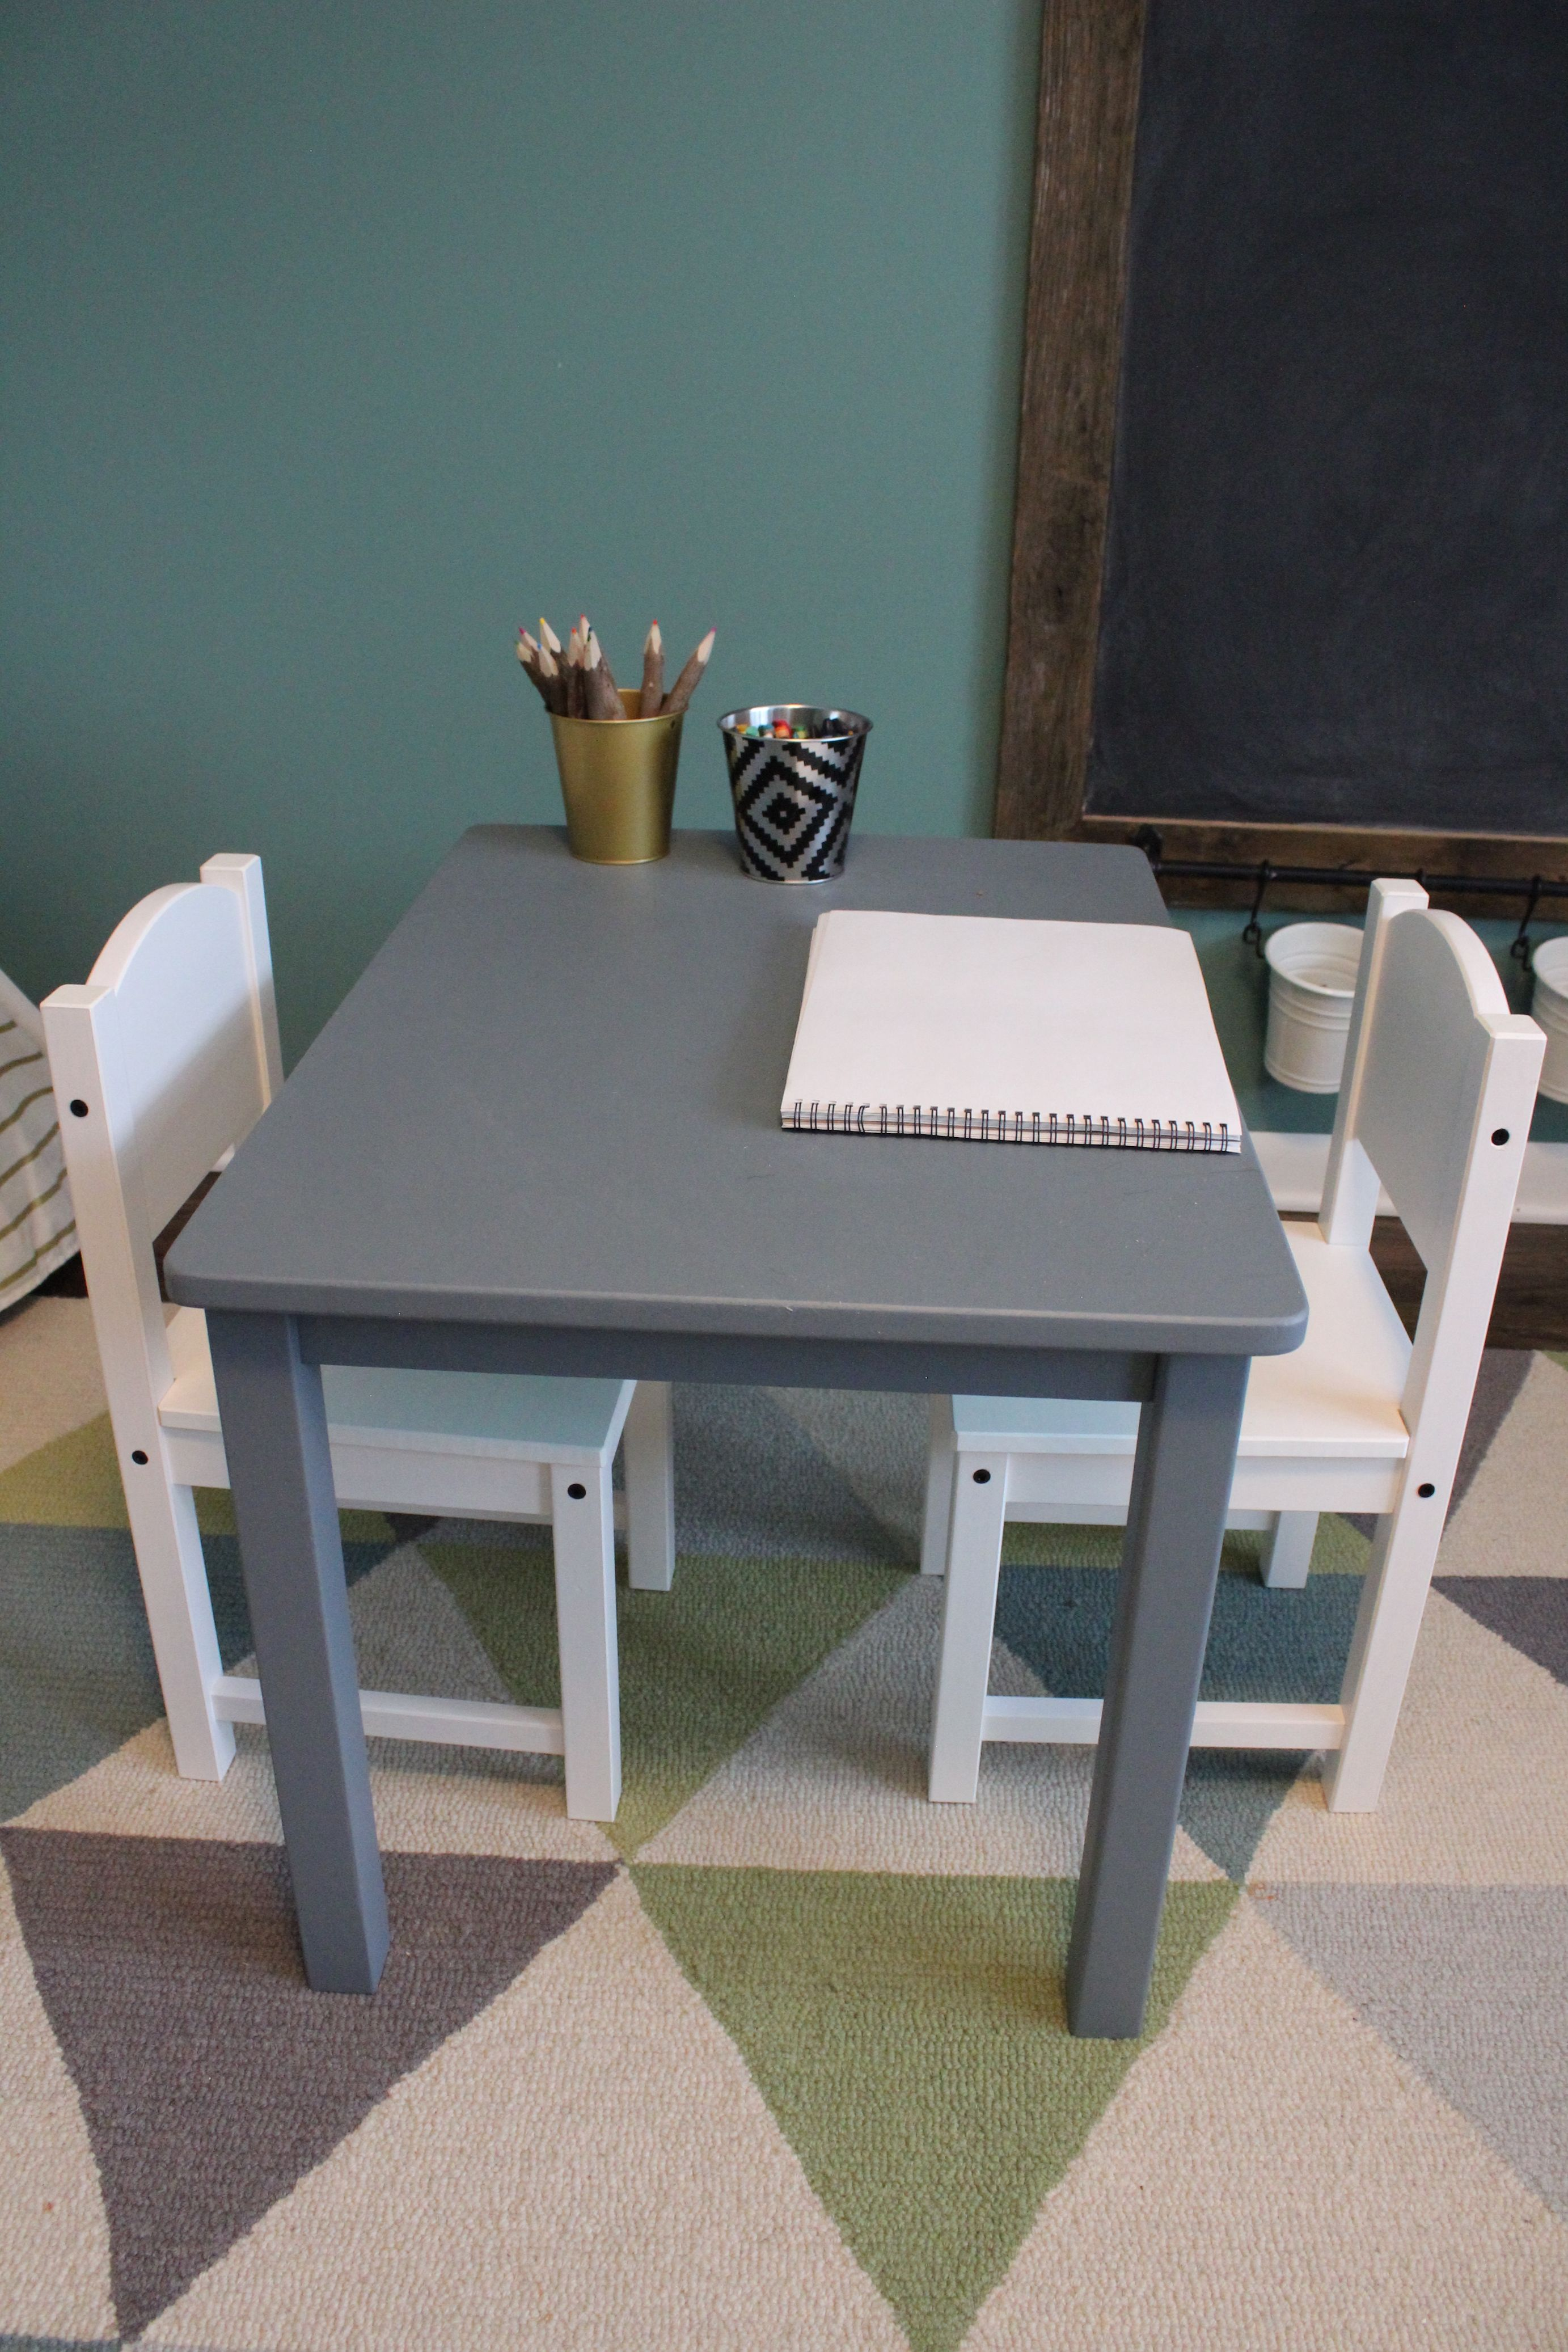 kids table and chairs ikea sundvik kids room ikea kids table rh pinterest com ikea childrens table and chairs gumtree ikea childrens table and chairs white